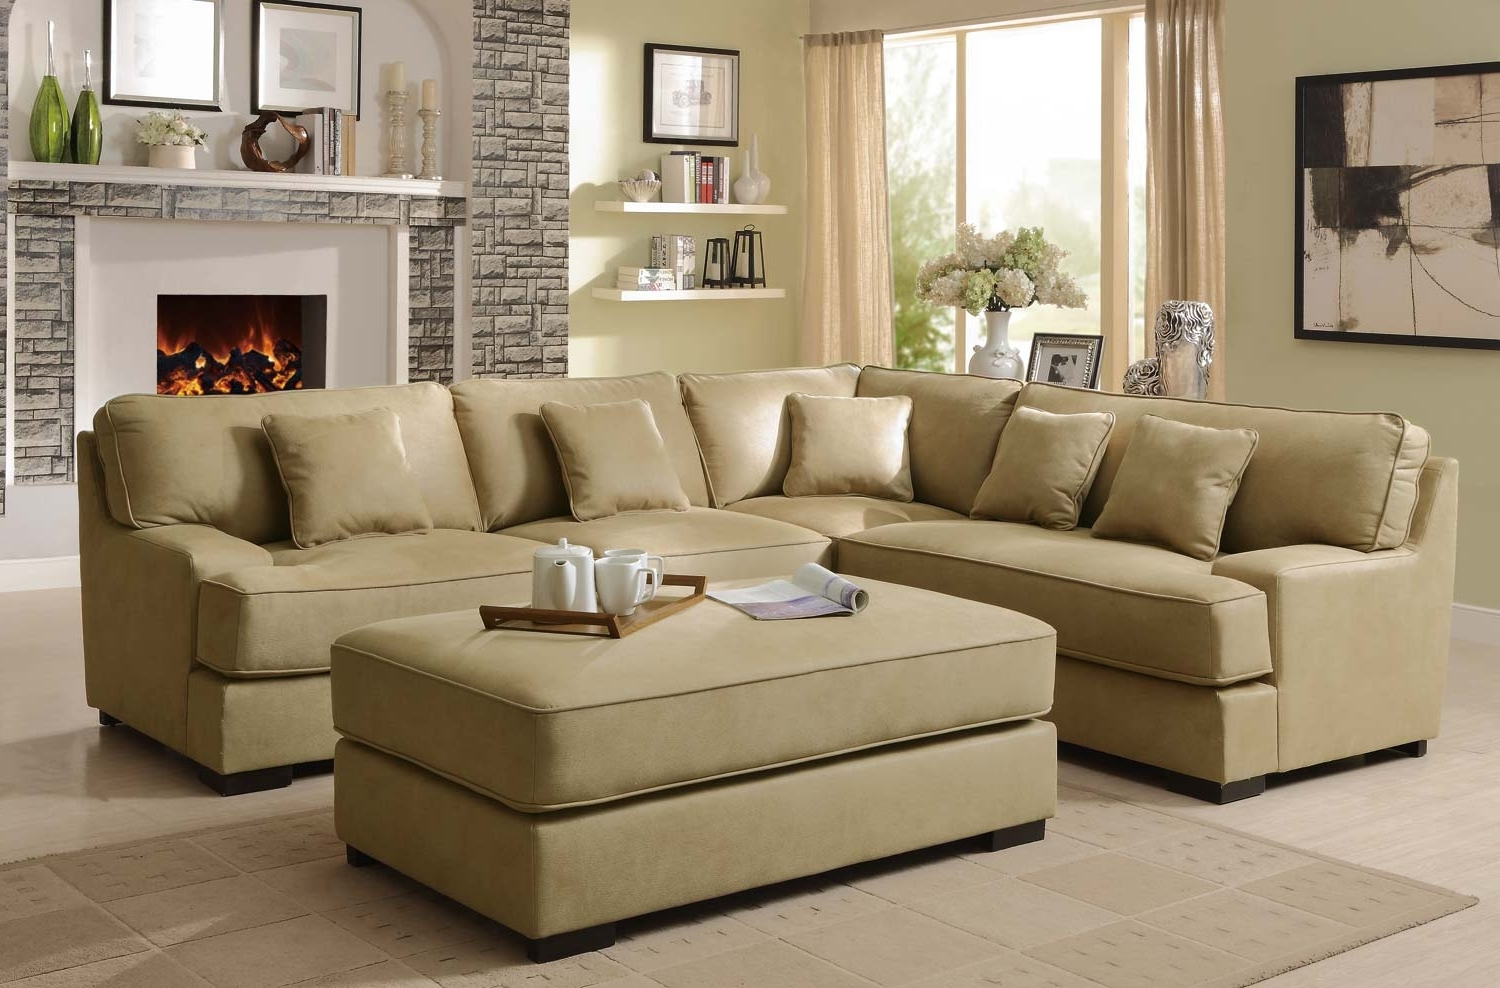 Latest Beige Sectional Sofas Inside Sectional Sofa Design: Amazing Beige Sectional Sofas Beige Leather (View 10 of 15)